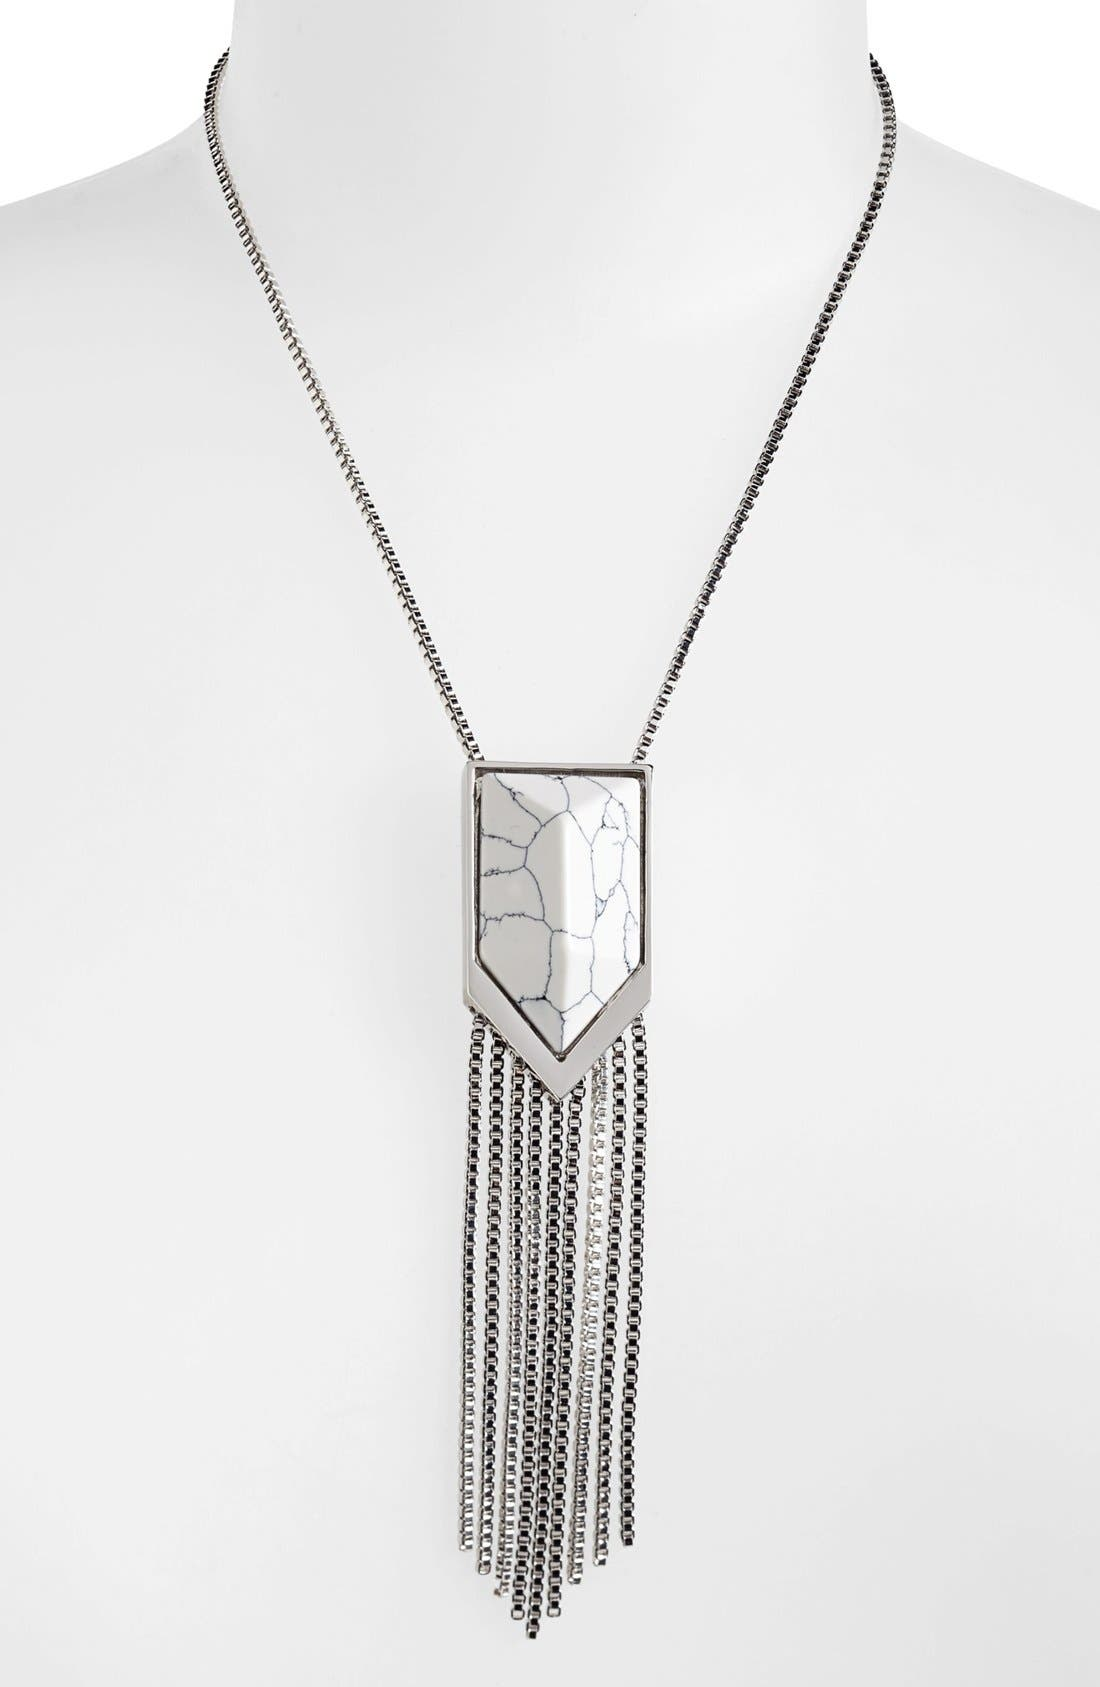 Main Image - Vince Camuto 'Clearview' Stone Fringe Pendant Necklace